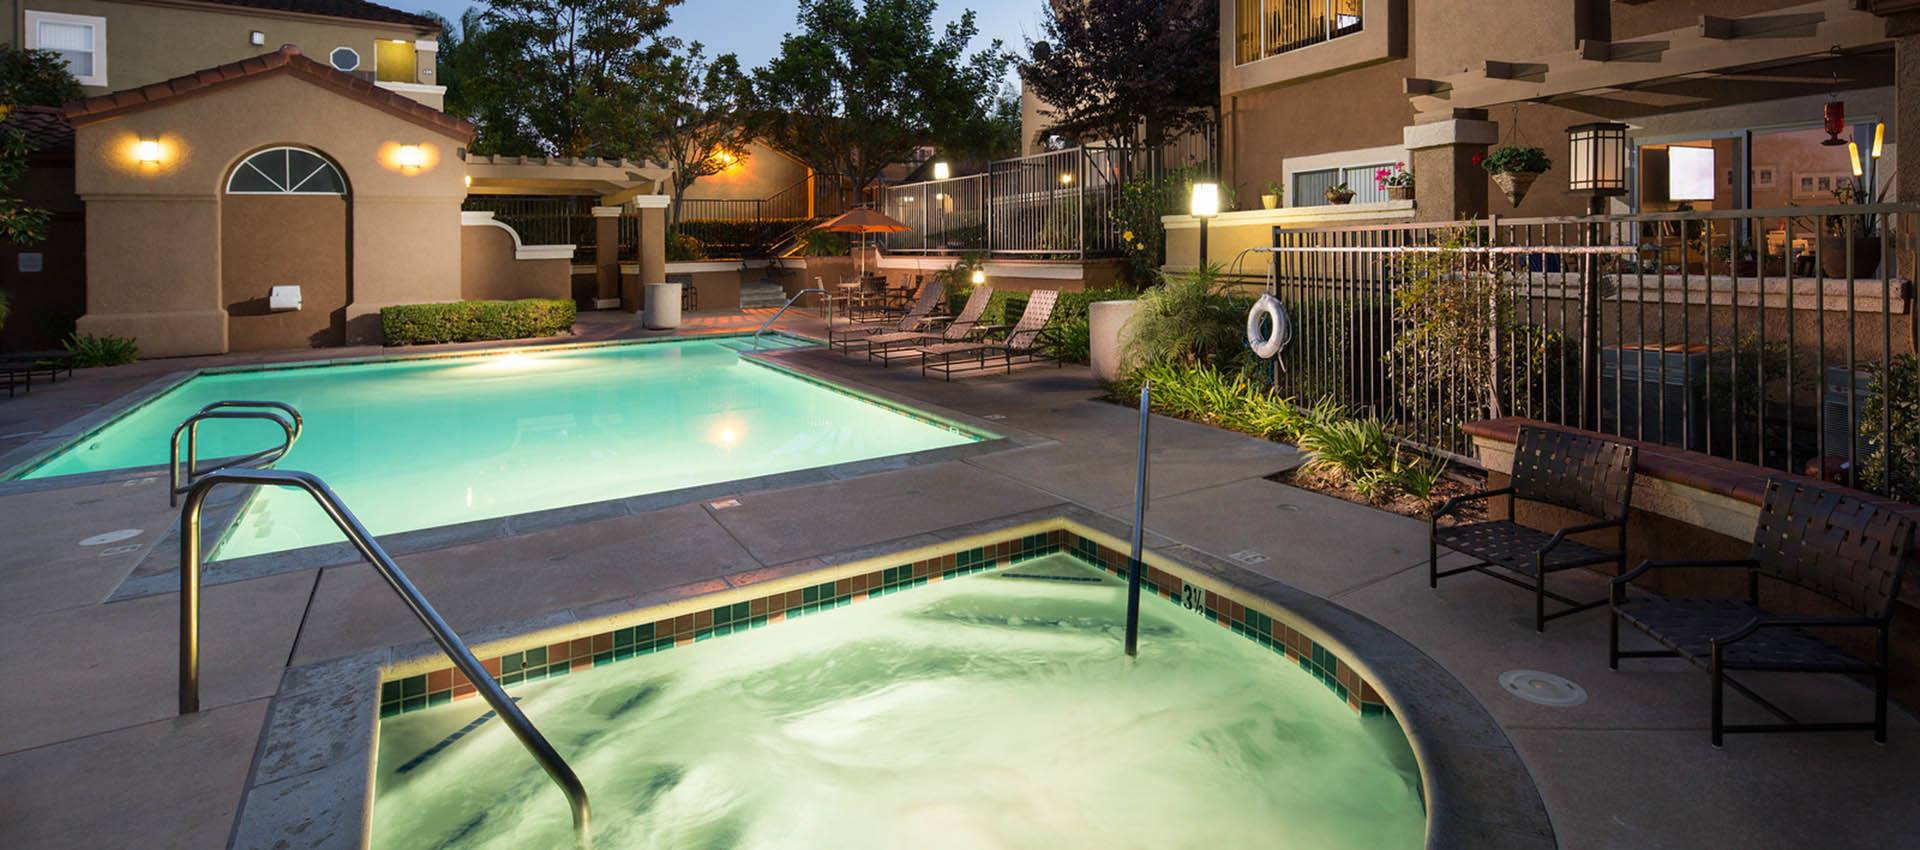 Expansive pool deck with spa at Niguel Summit Condominium Rentals in Laguna Niguel, California